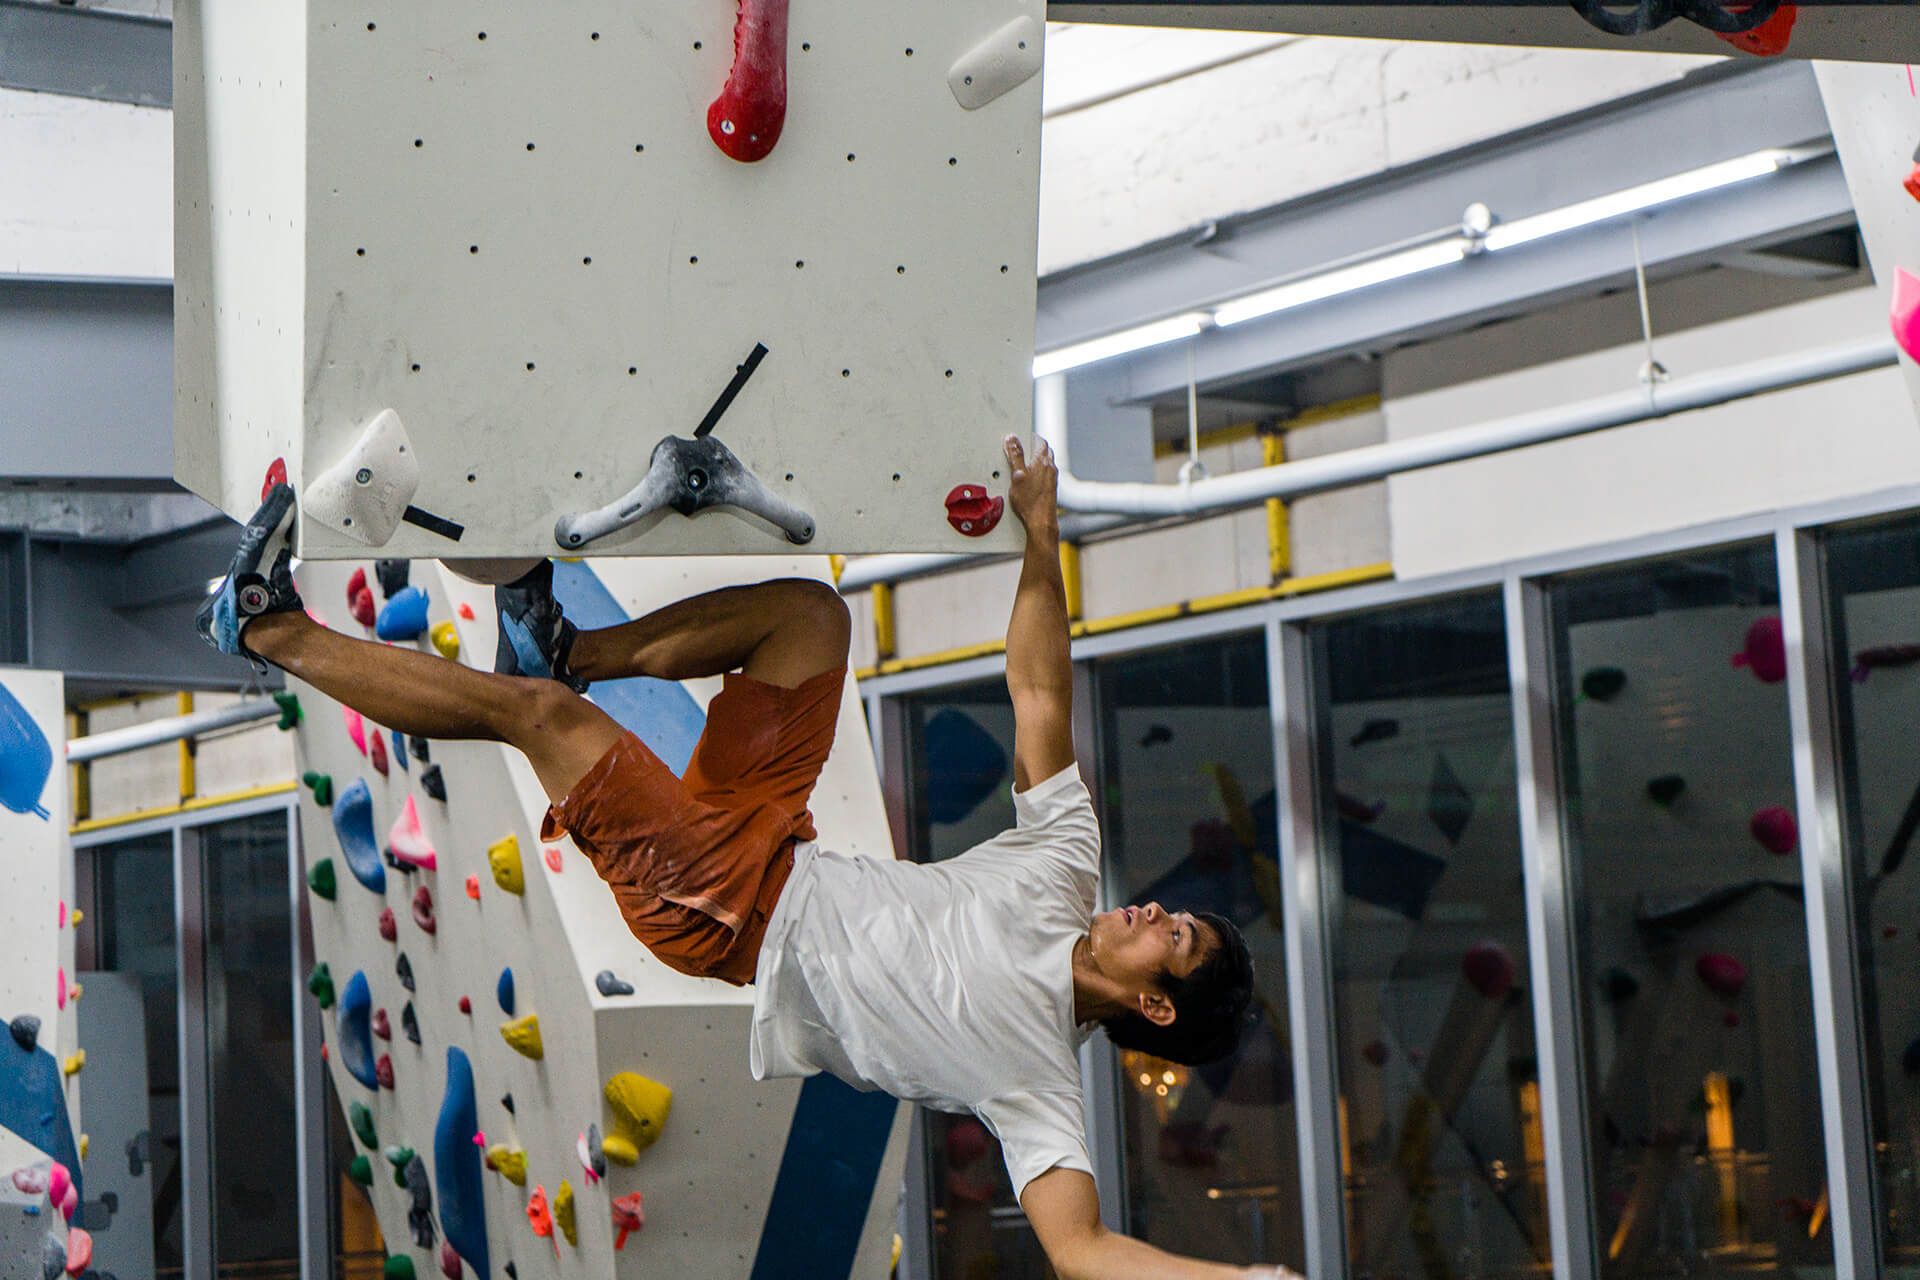 Bouldering athlete hanging by a single grip from the ledge